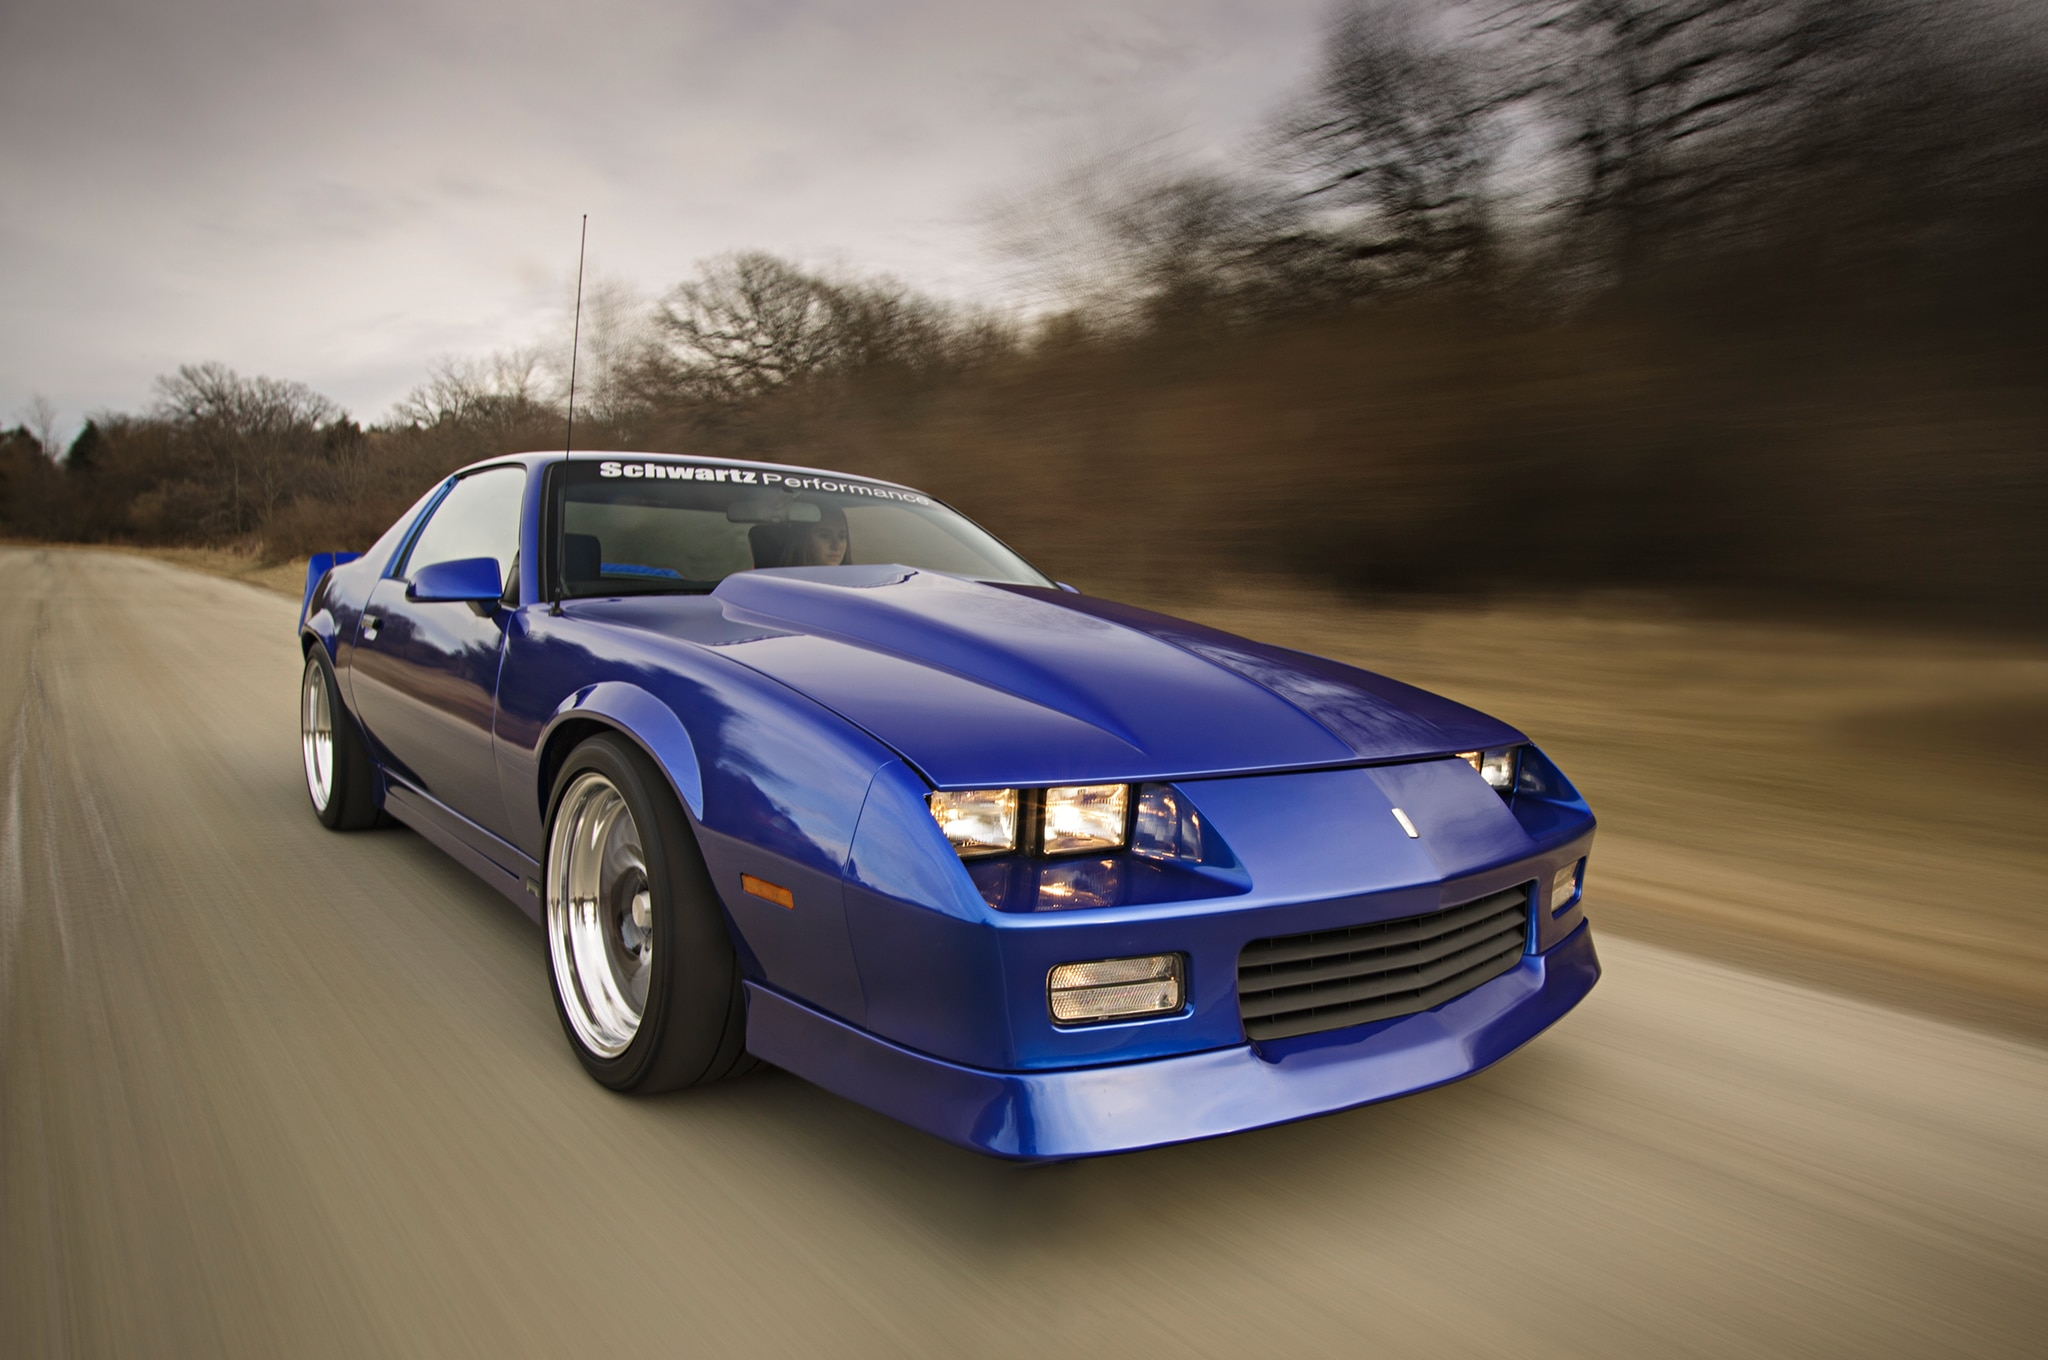 small resolution of here s one of the coolest third gen camaros you ll ever see 1989 1989 camaro wiring diagram 1992 camaro interior wiring diagram